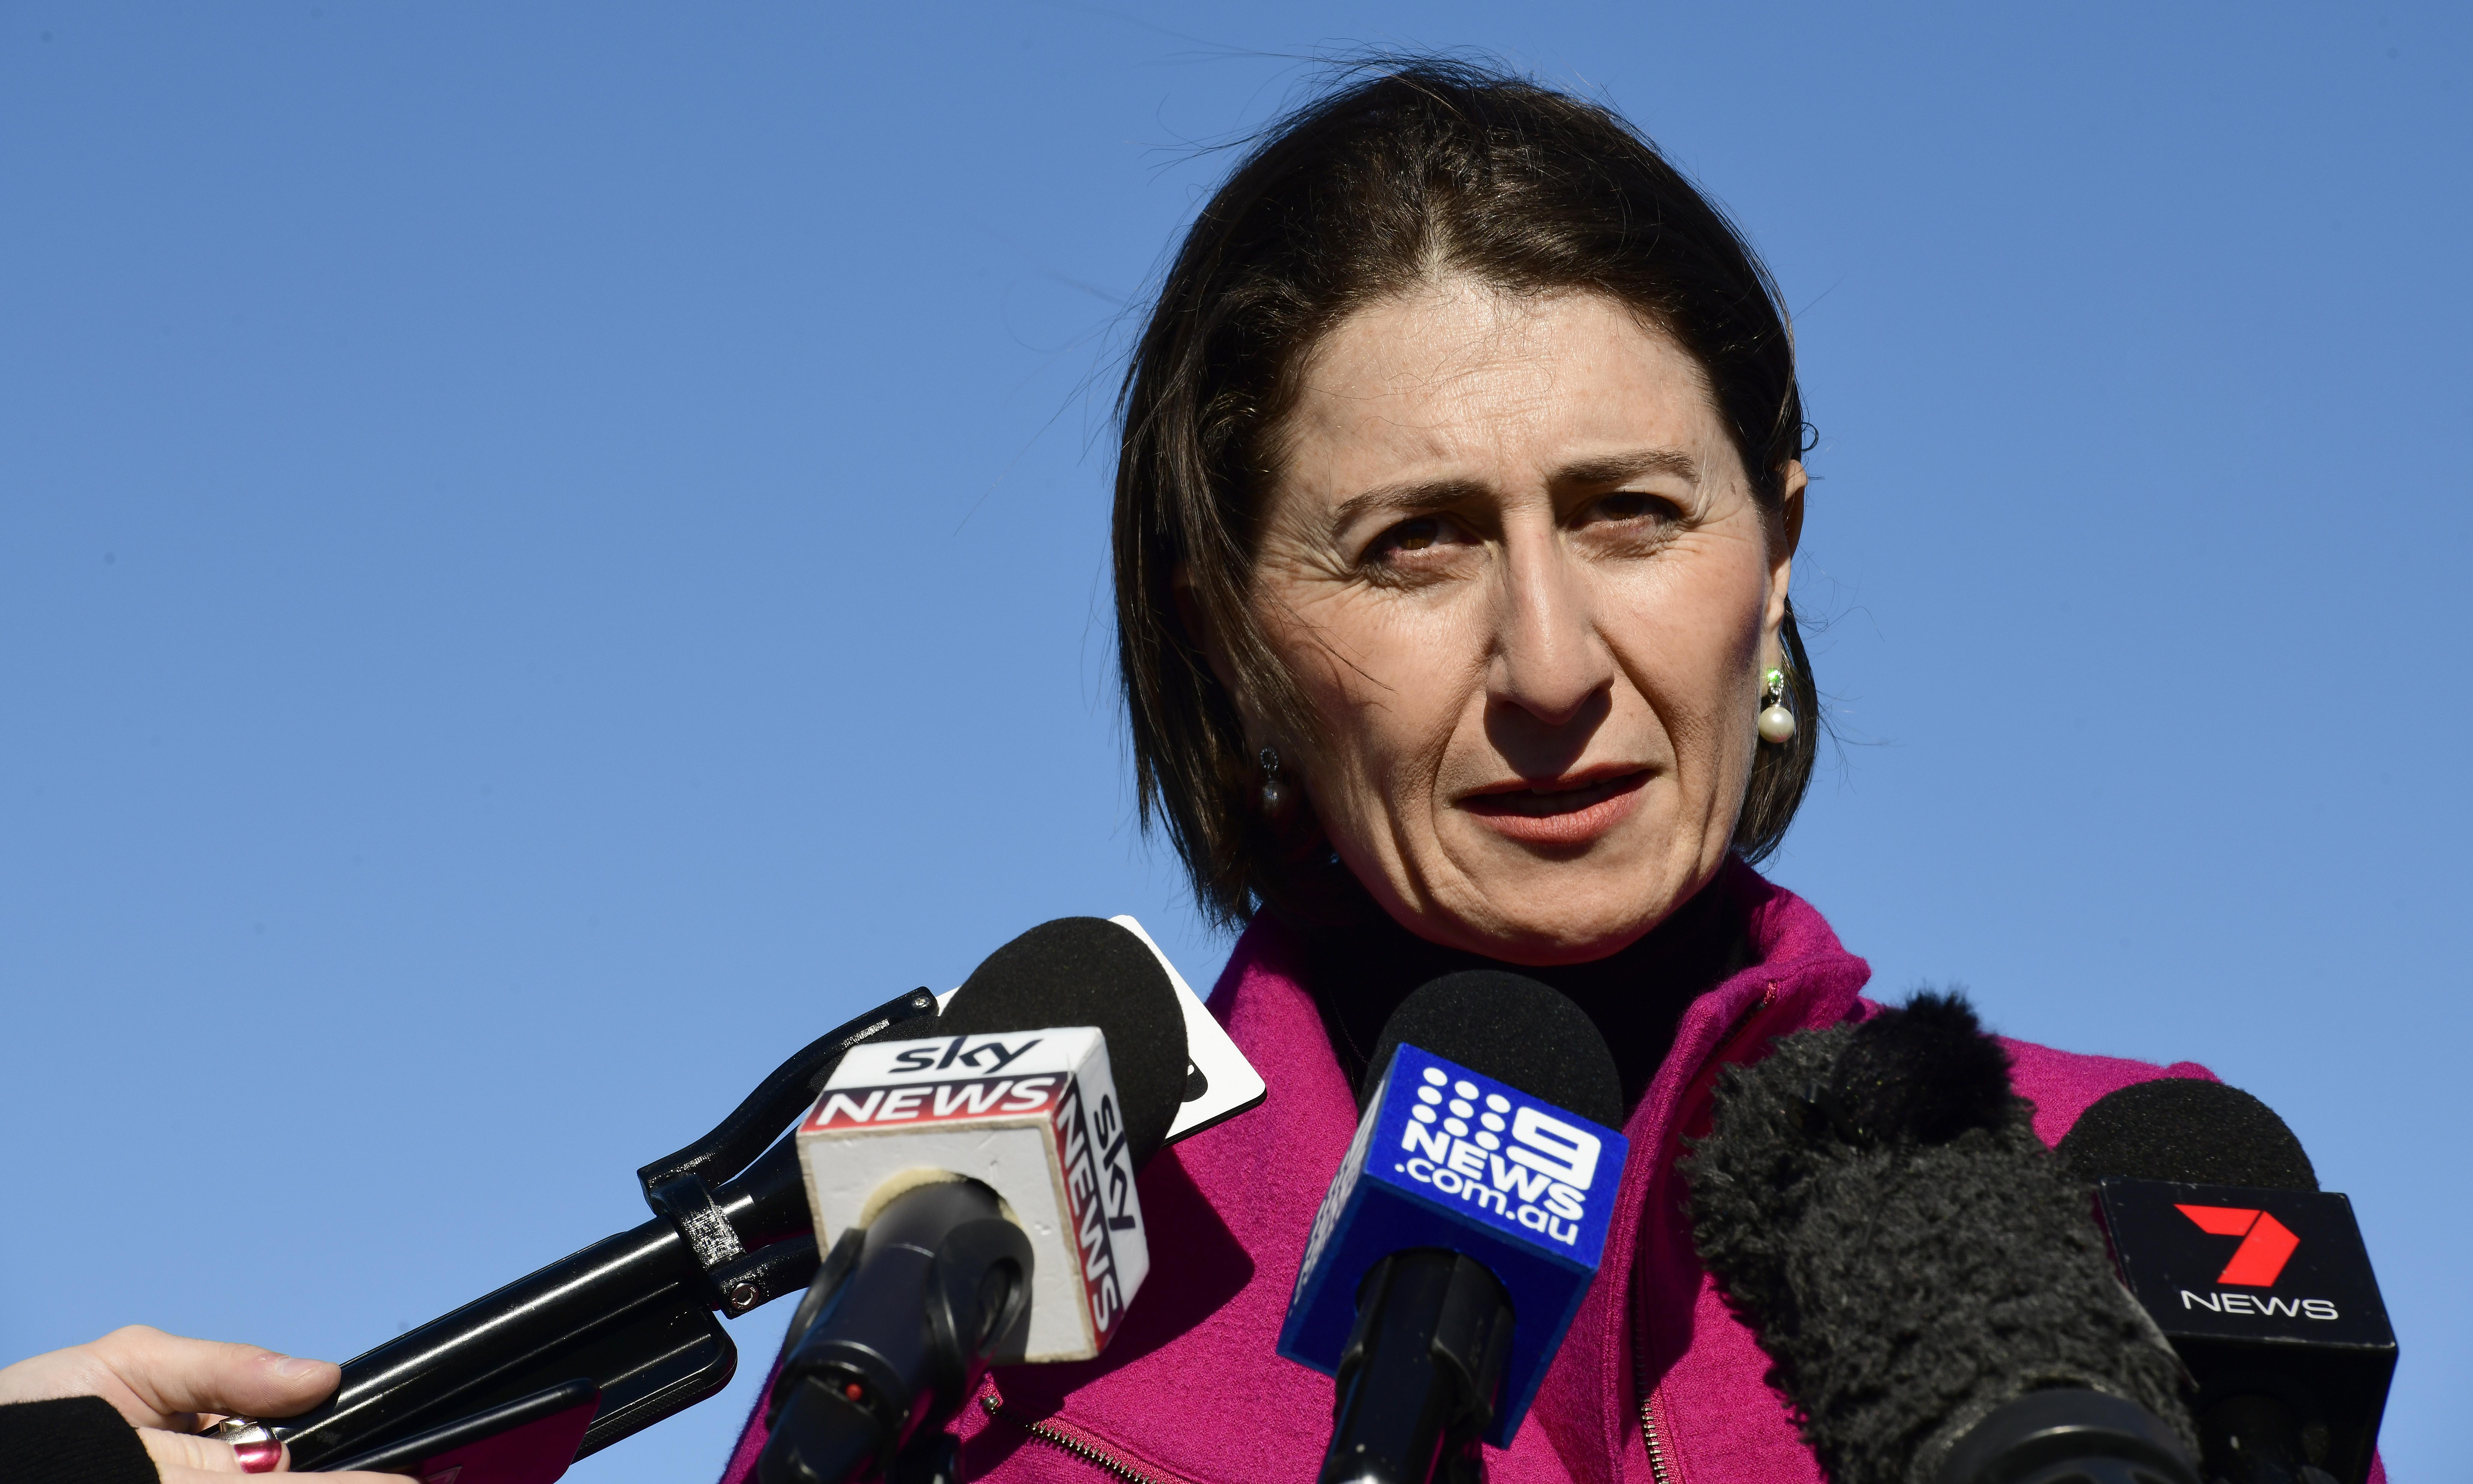 Berejiklian sticks to drug abstinence stance when asked about over-policing at festivals